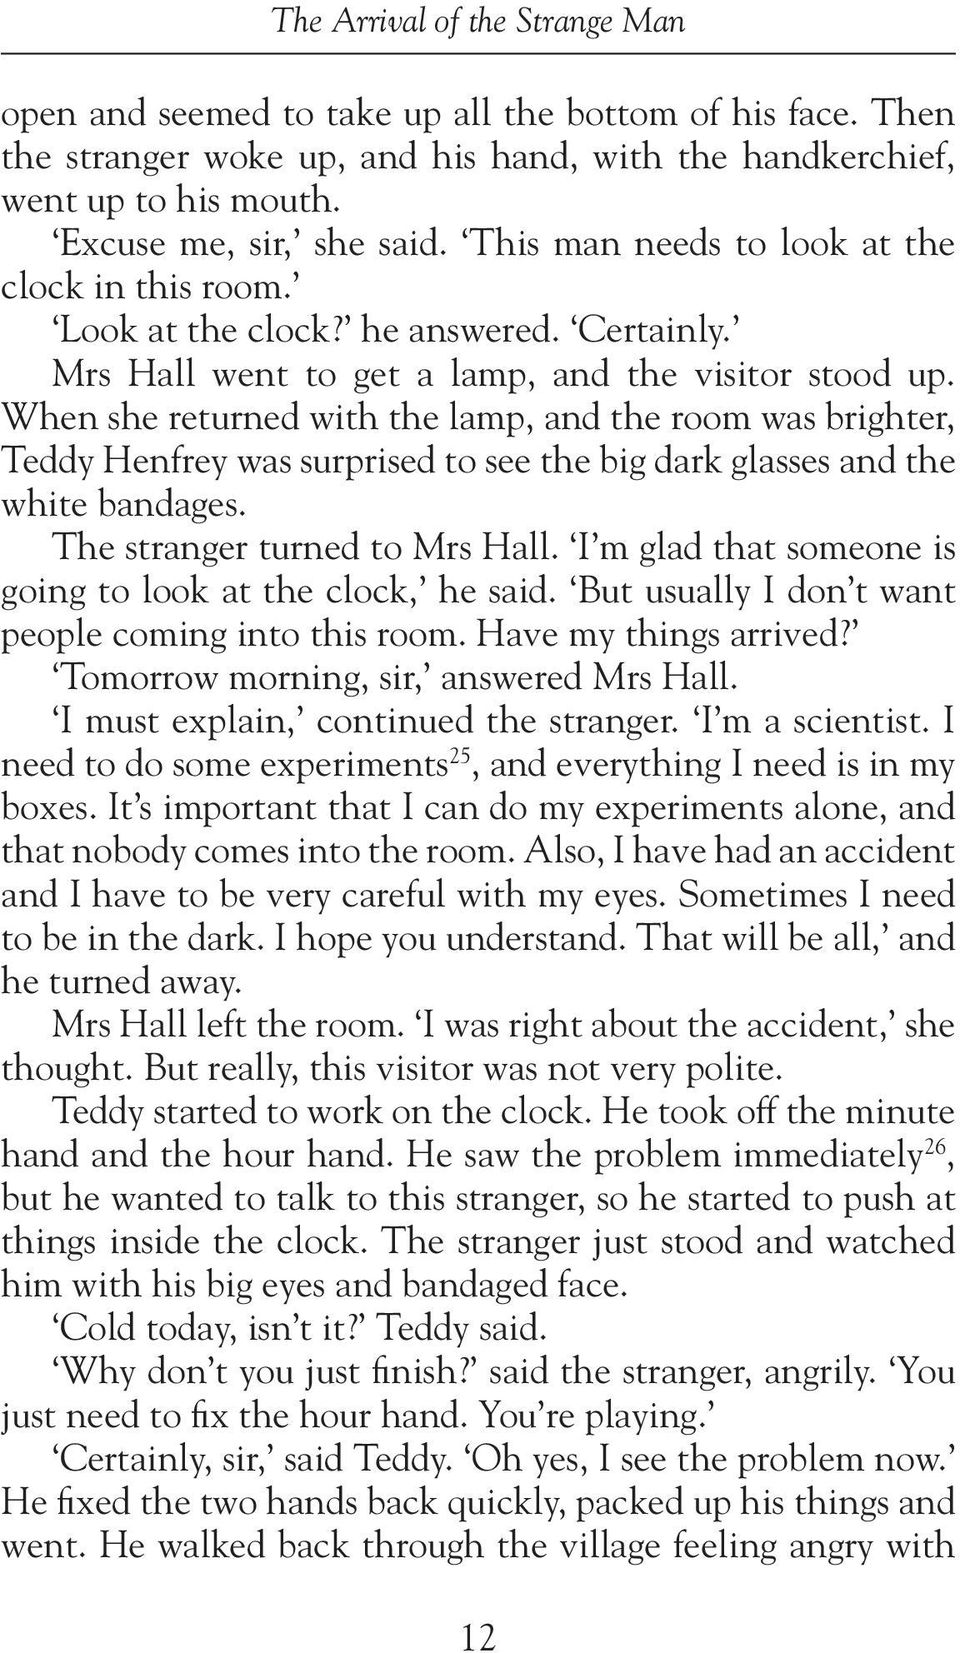 When she returned with the lamp, and the room was brighter, Teddy Henfrey was surprised to see the big dark glasses and the white bandages. The stranger turned to Mrs Hall.